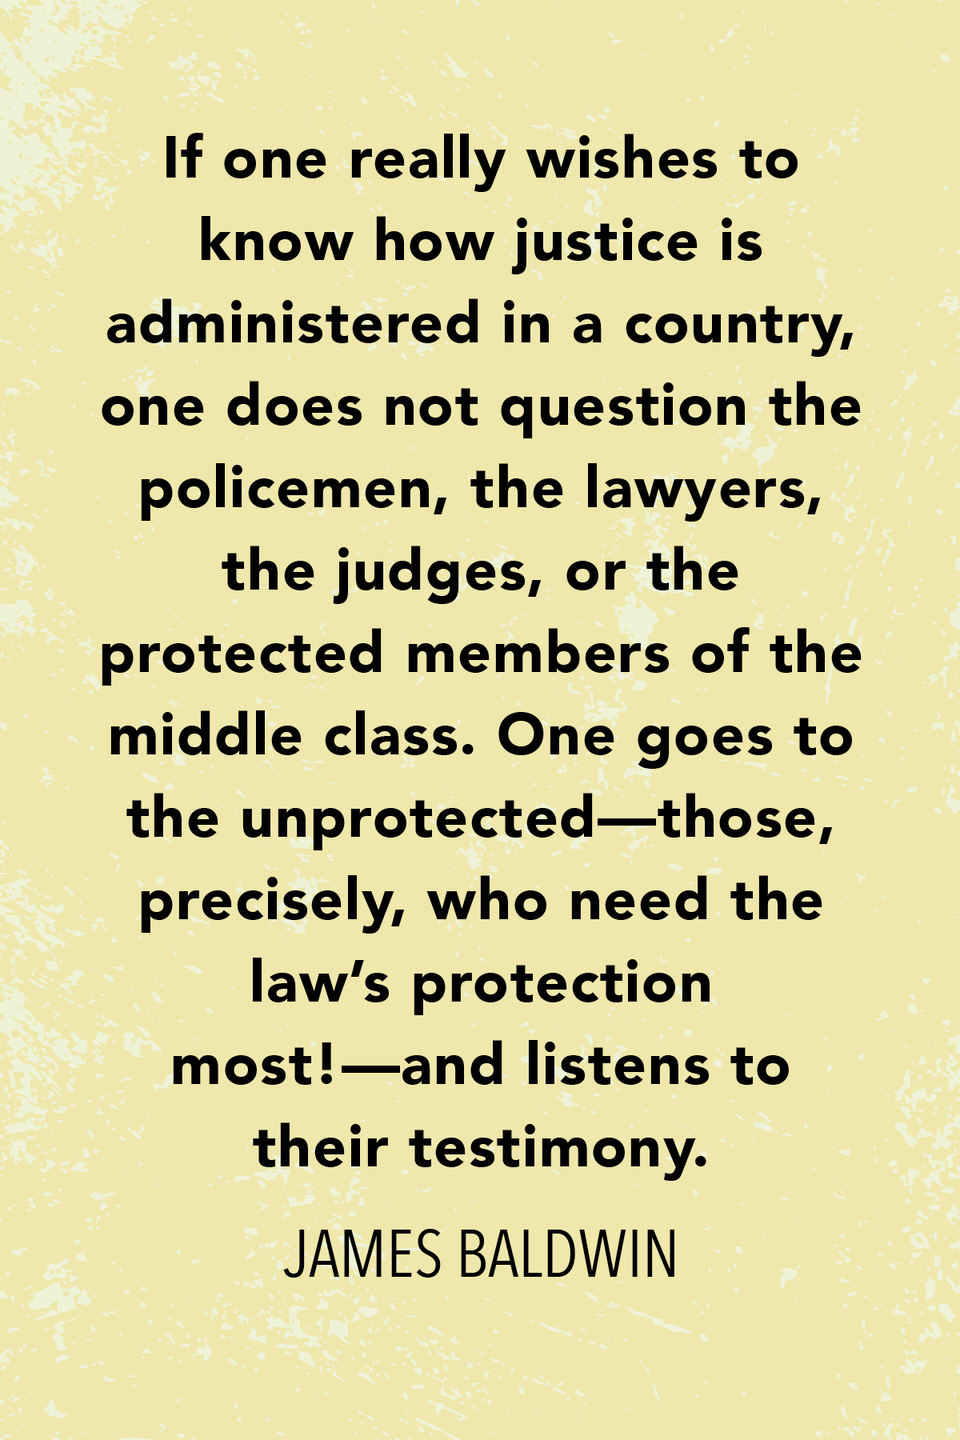 """<p>In <em>No Name on the Street</em> he wrote, """"If one really wishes to know how justice is administered in a country, one does not question the policemen, the lawyers, the judges, or the protected members of the middle class. One goes to the unprotected—those, precisely, who need the law's protection most!—and listens to their testimony.""""</p>"""